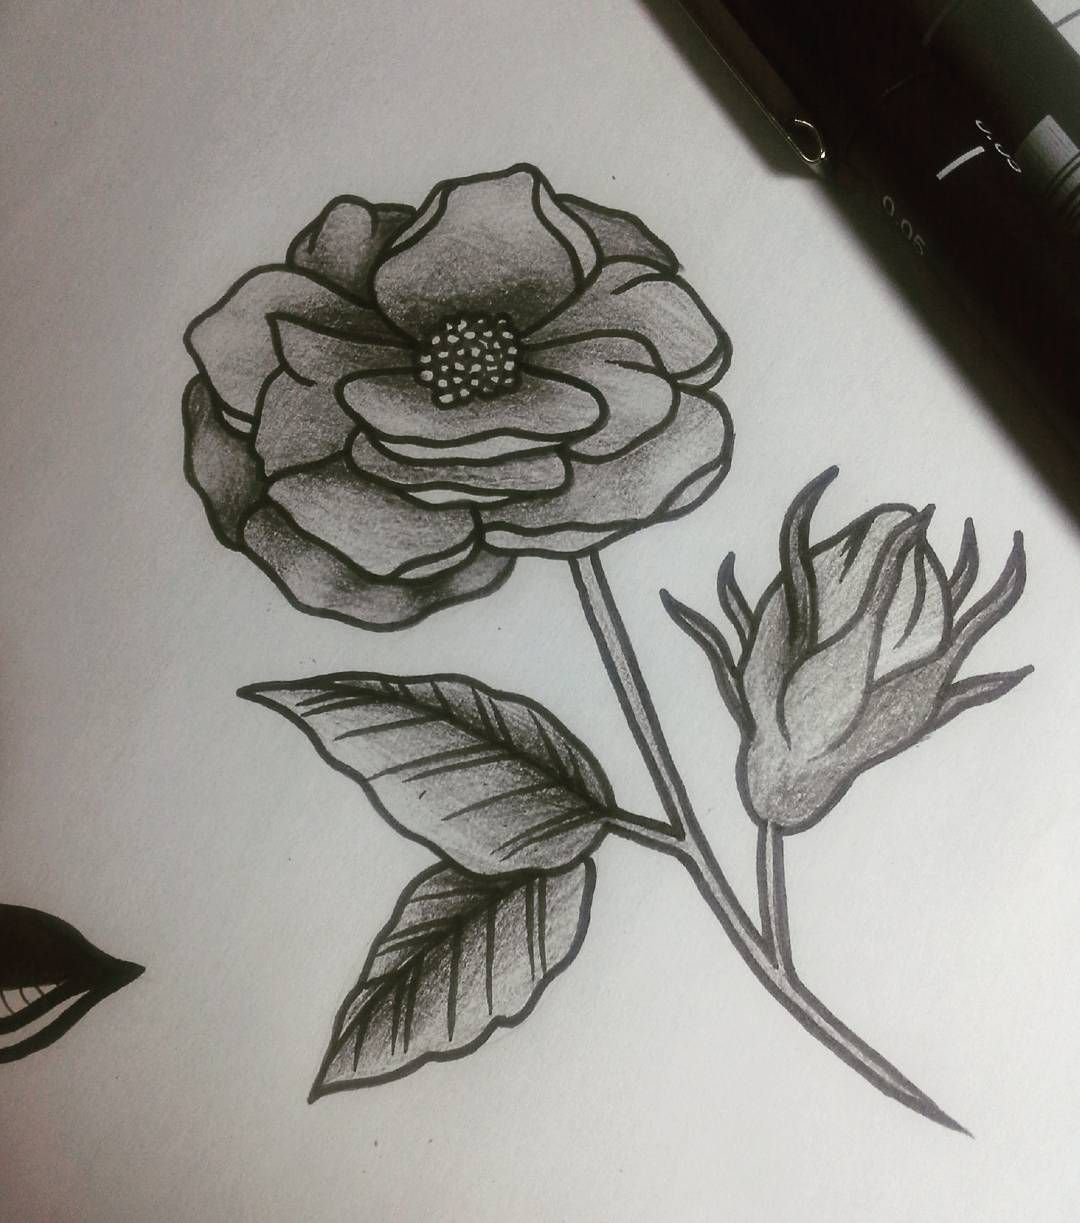 Rosa disponível pra tattoo! . . . #sketch #drawing  #blackwork #tattoo #blacktattoomag #inked #blxckink #flashtattoo #blacktattooing #tattoooftheday #tattooist #tattoodesing #linework #tattoolovers #blacktattooart #marinalichttattoo #marinatattoo #blackworkerssubmission #blackandwhite #tattoolife #inkstinctsubmission #blackworkers_tattoo  #dotworkers  #ladytattooers #tattrx #flowerstattoo #blackndark  #equilattera #dotworktattoo #onlyblackart by marinaalicht